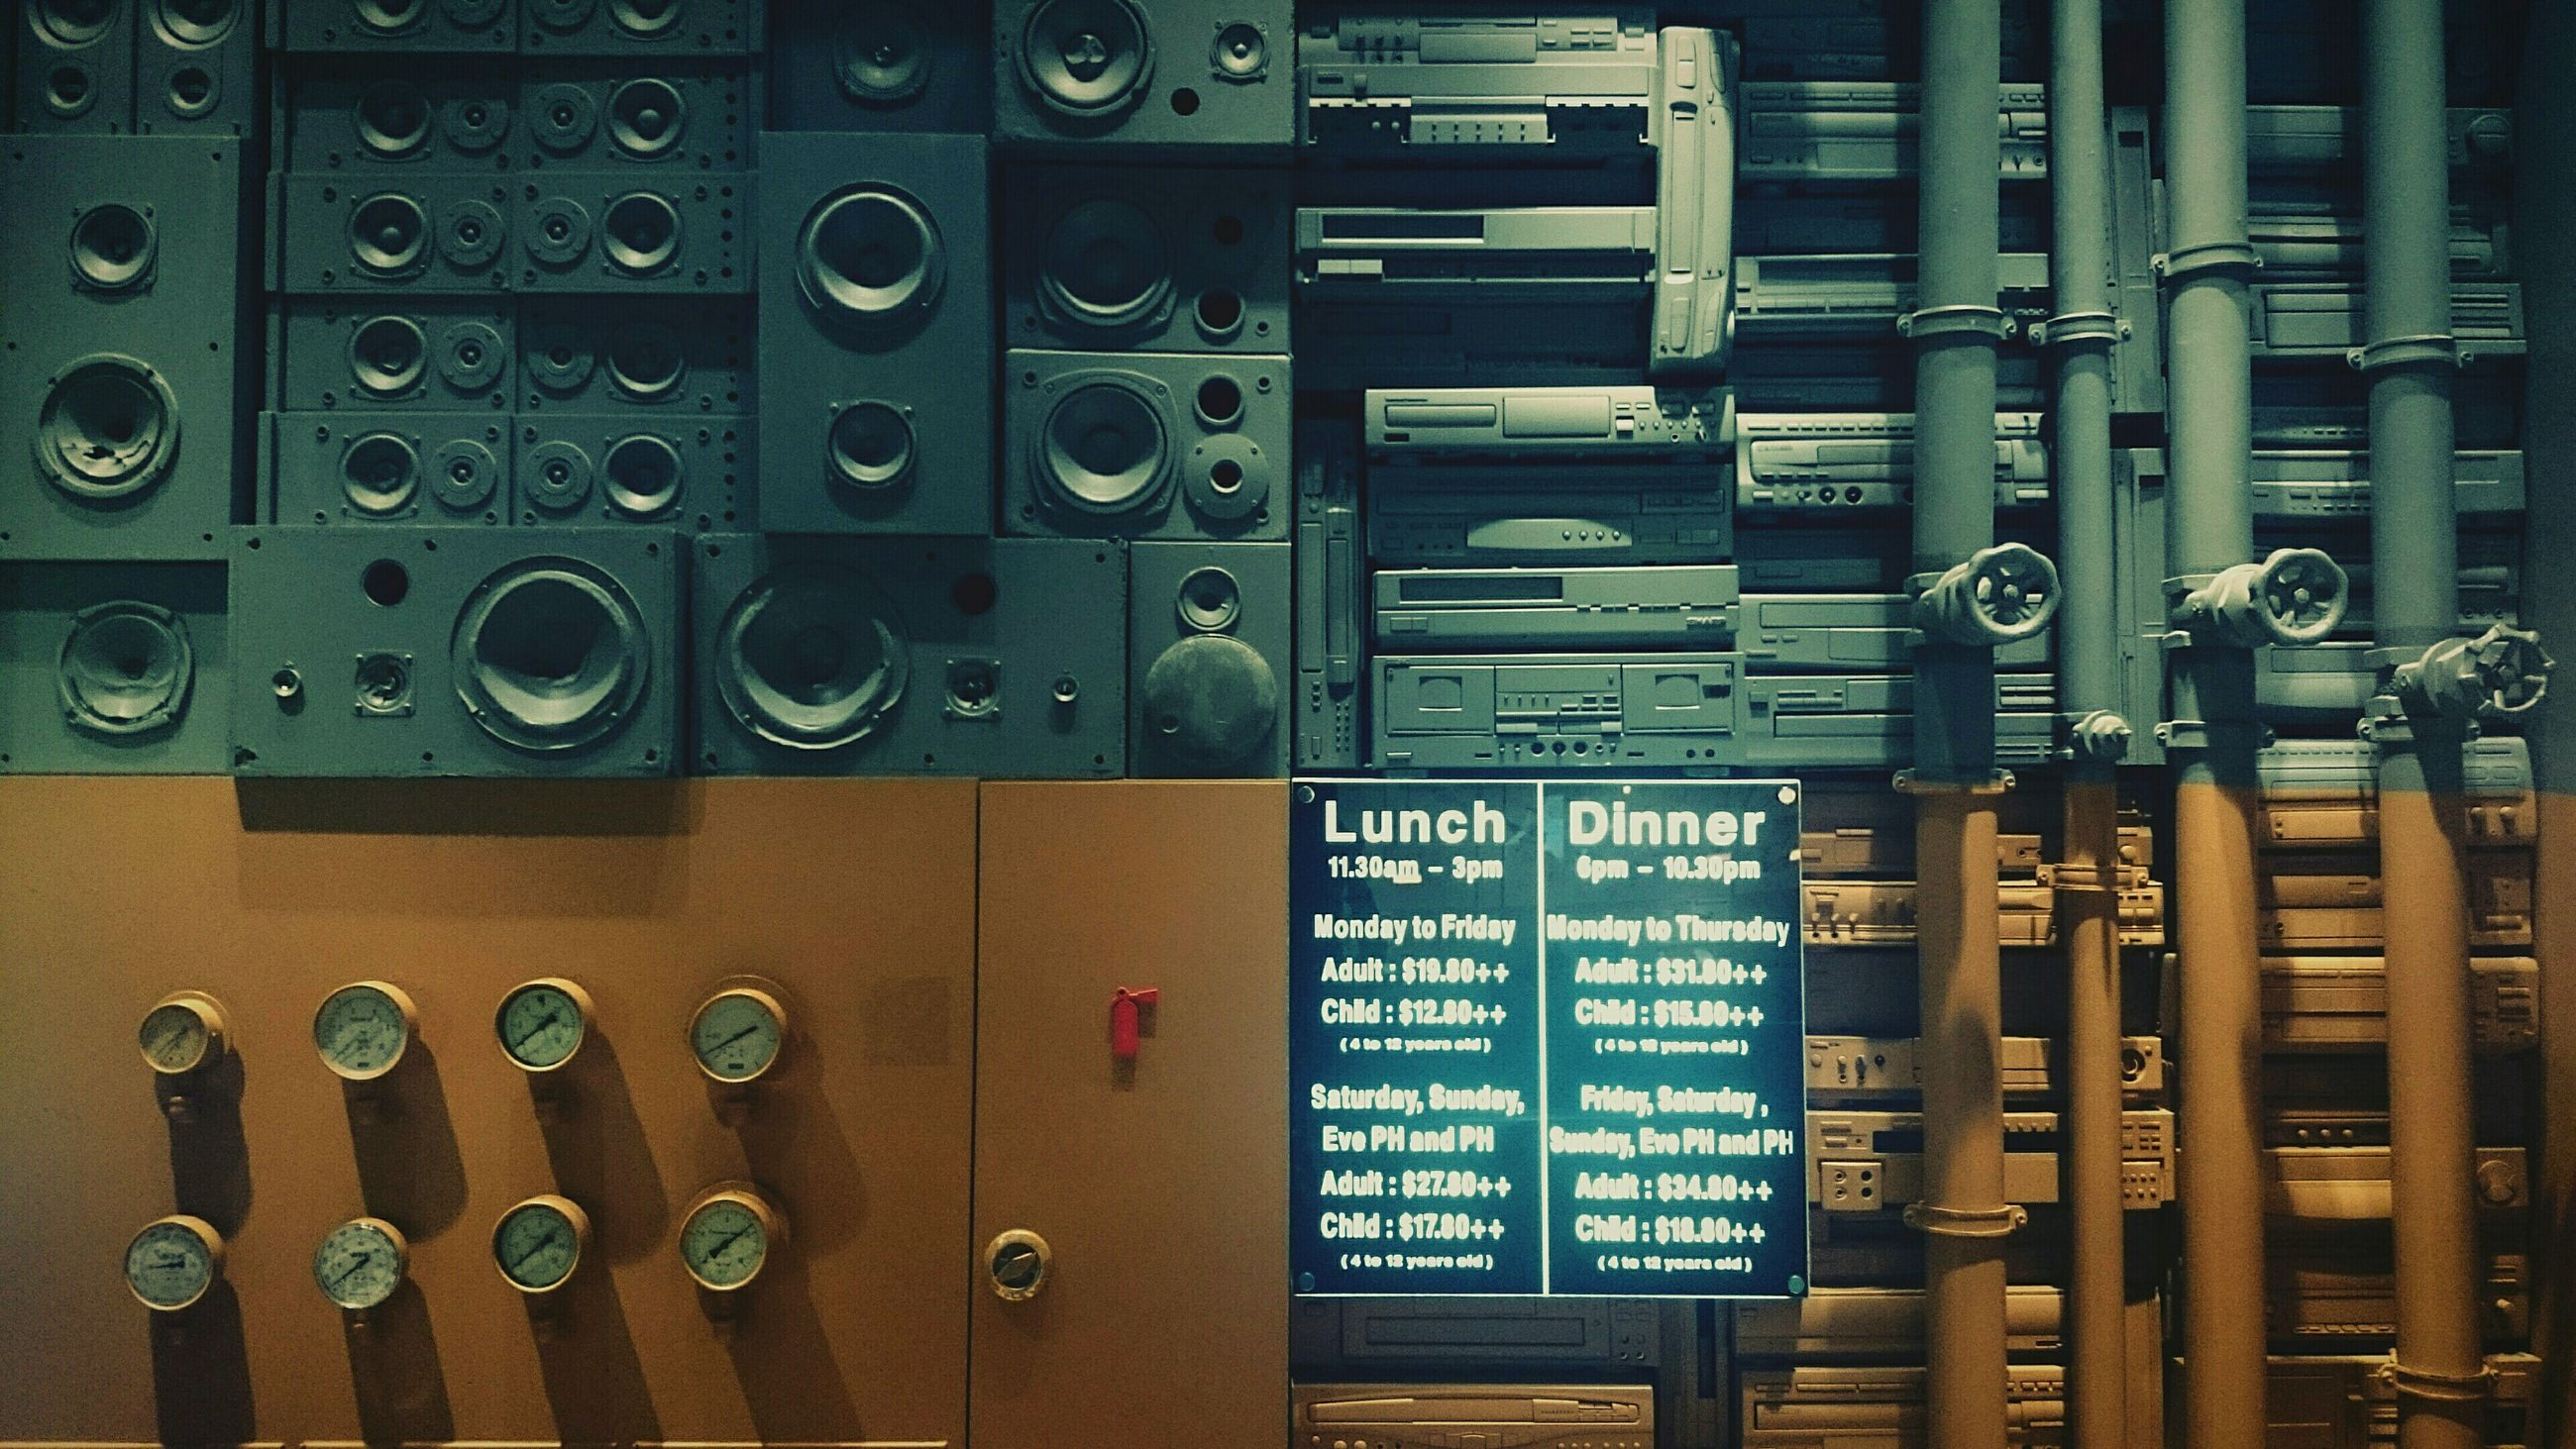 indoors, communication, technology, text, large group of objects, number, metal, close-up, control, western script, still life, in a row, abundance, variation, equipment, connection, full frame, order, control panel, old-fashioned